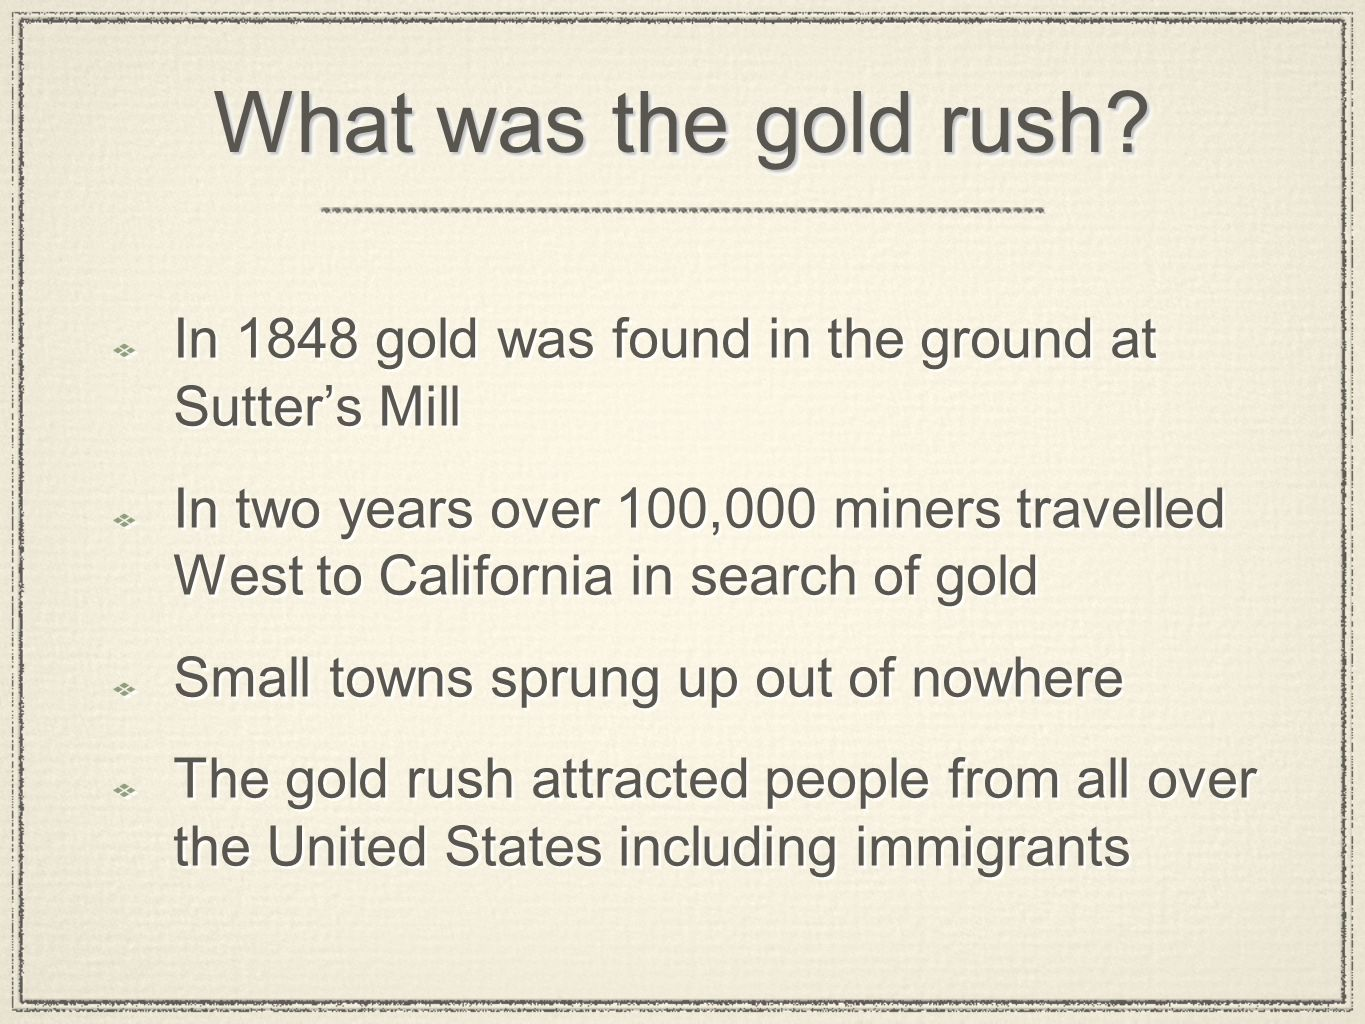 What was the gold rush In 1848 gold was found in the ground at Sutter's Mill.